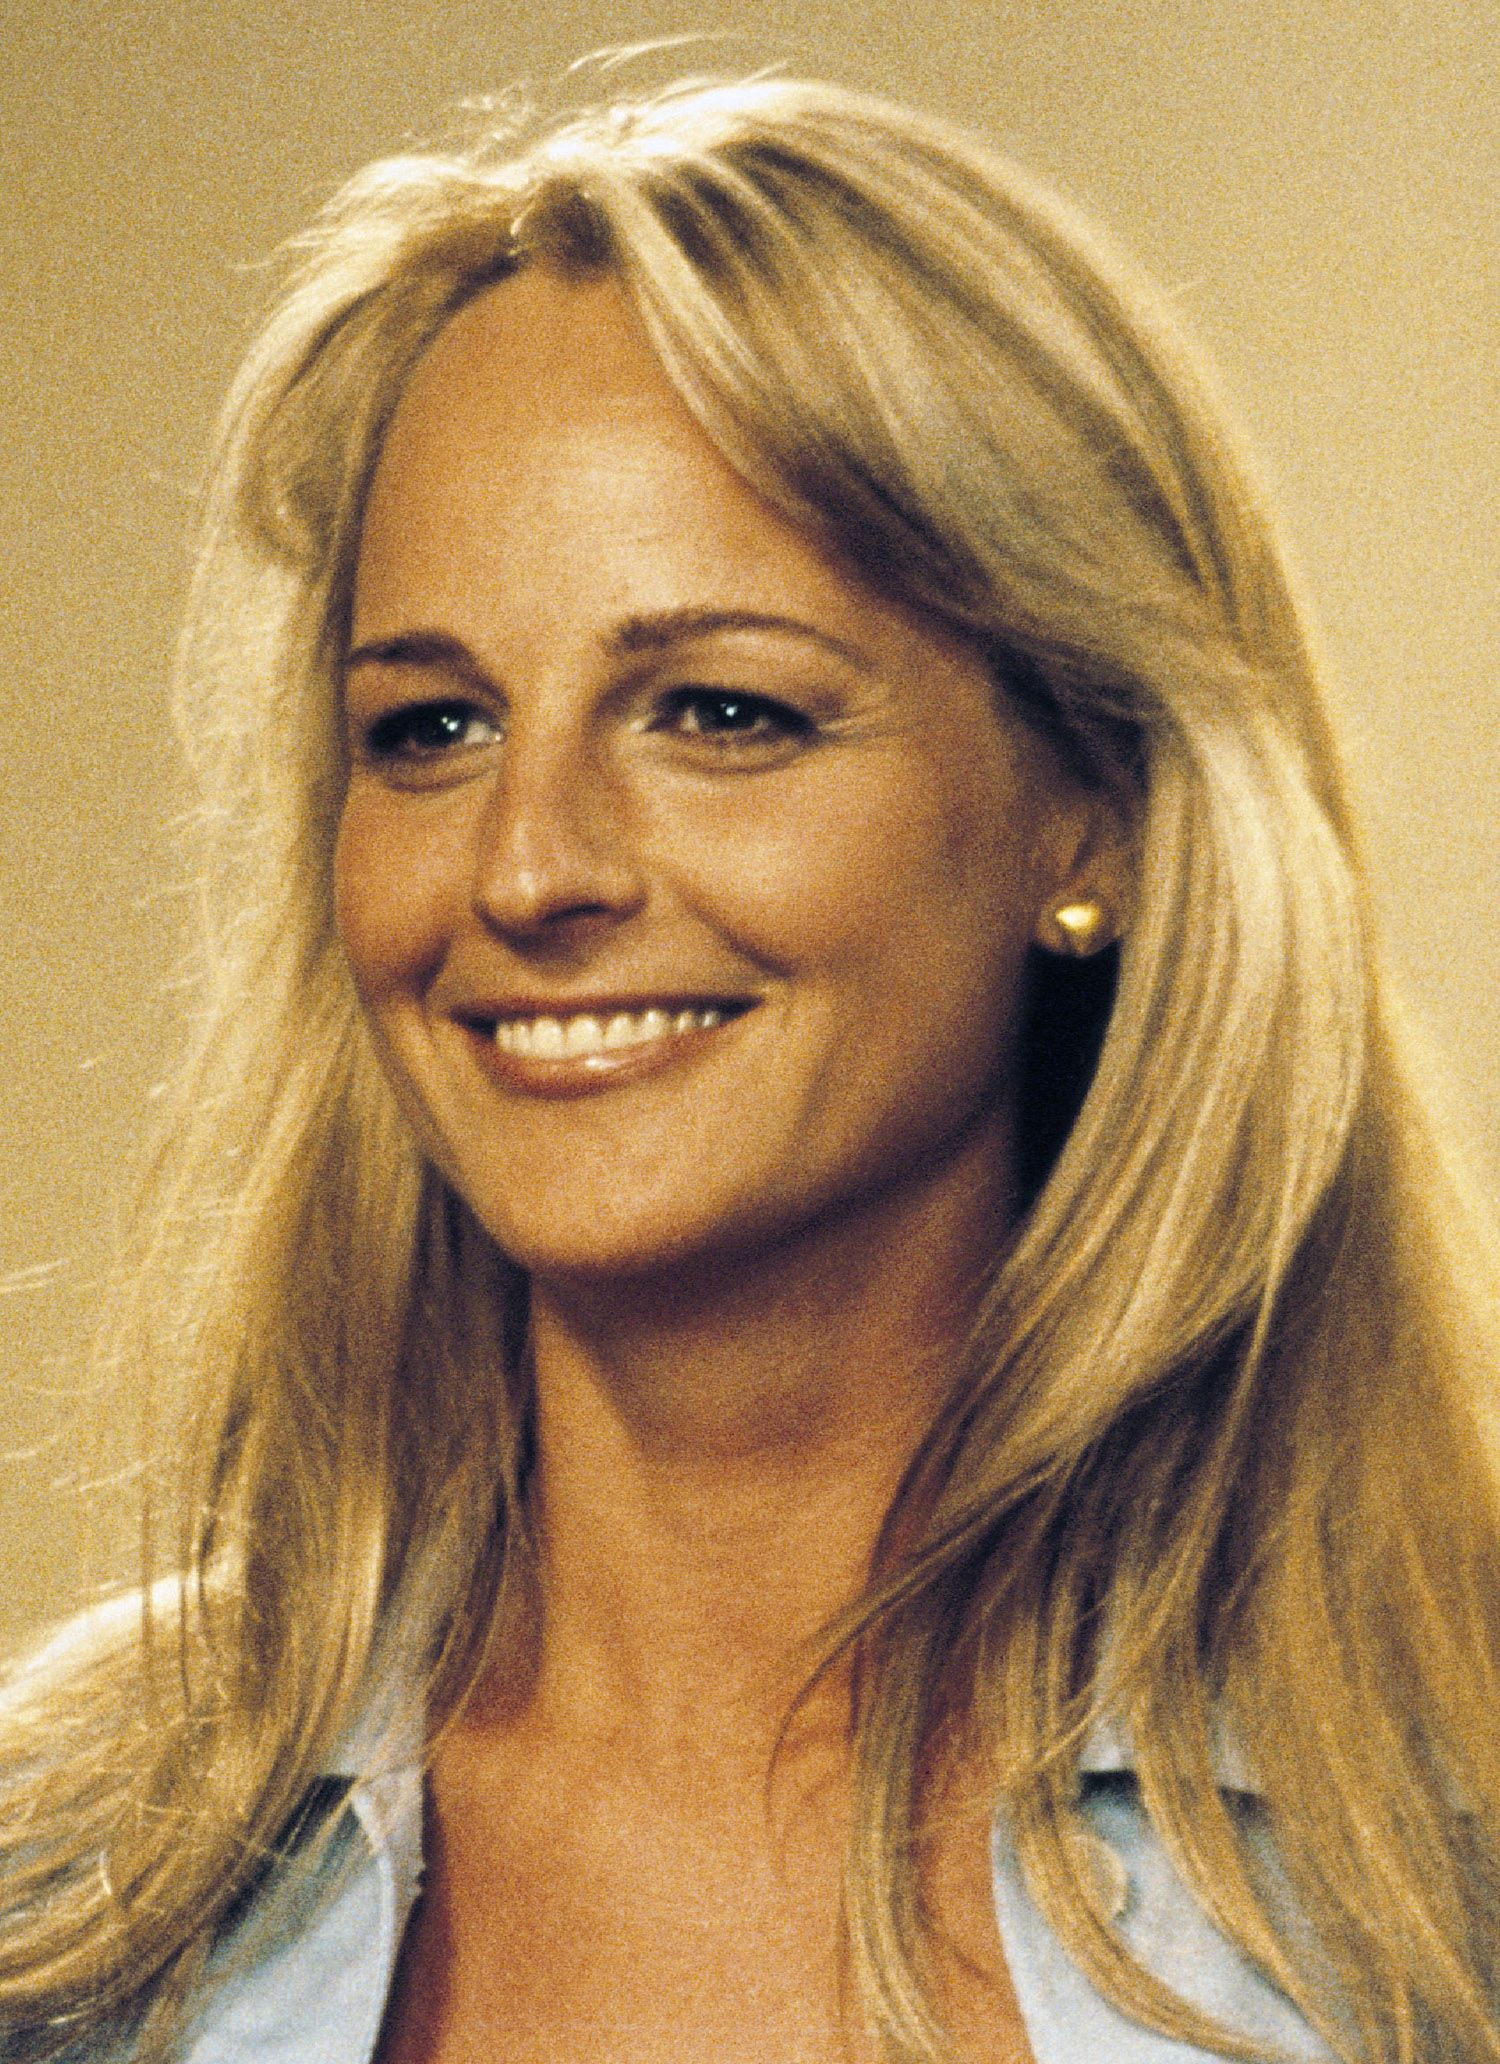 Helen Hunt born June 15, 1963 (age 55) Helen Hunt born June 15, 1963 (age 55) new images